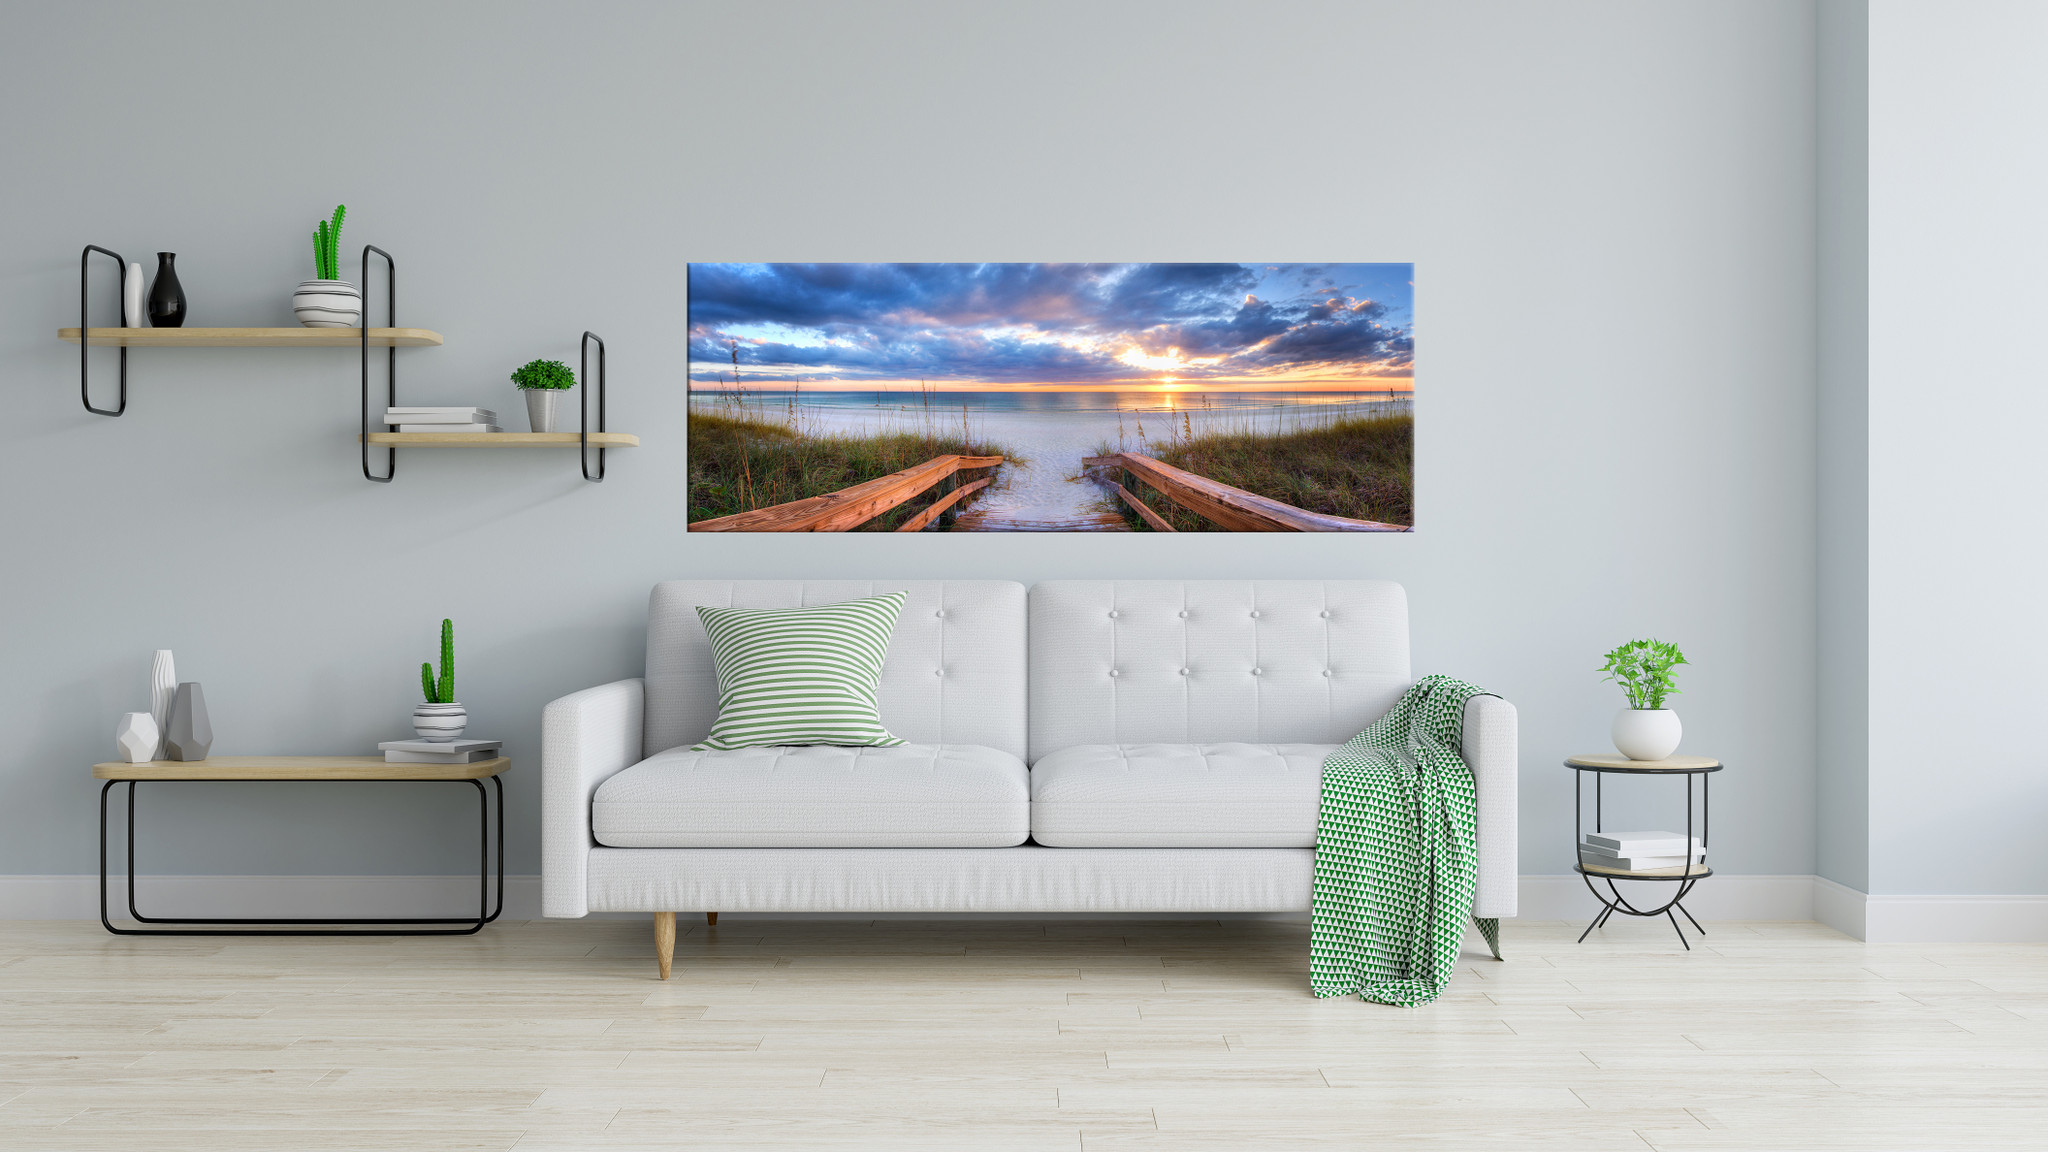 Life S A Beach Limited Edition Gicl Eacute E Large Format Canvas Art Prints From Masters At Art